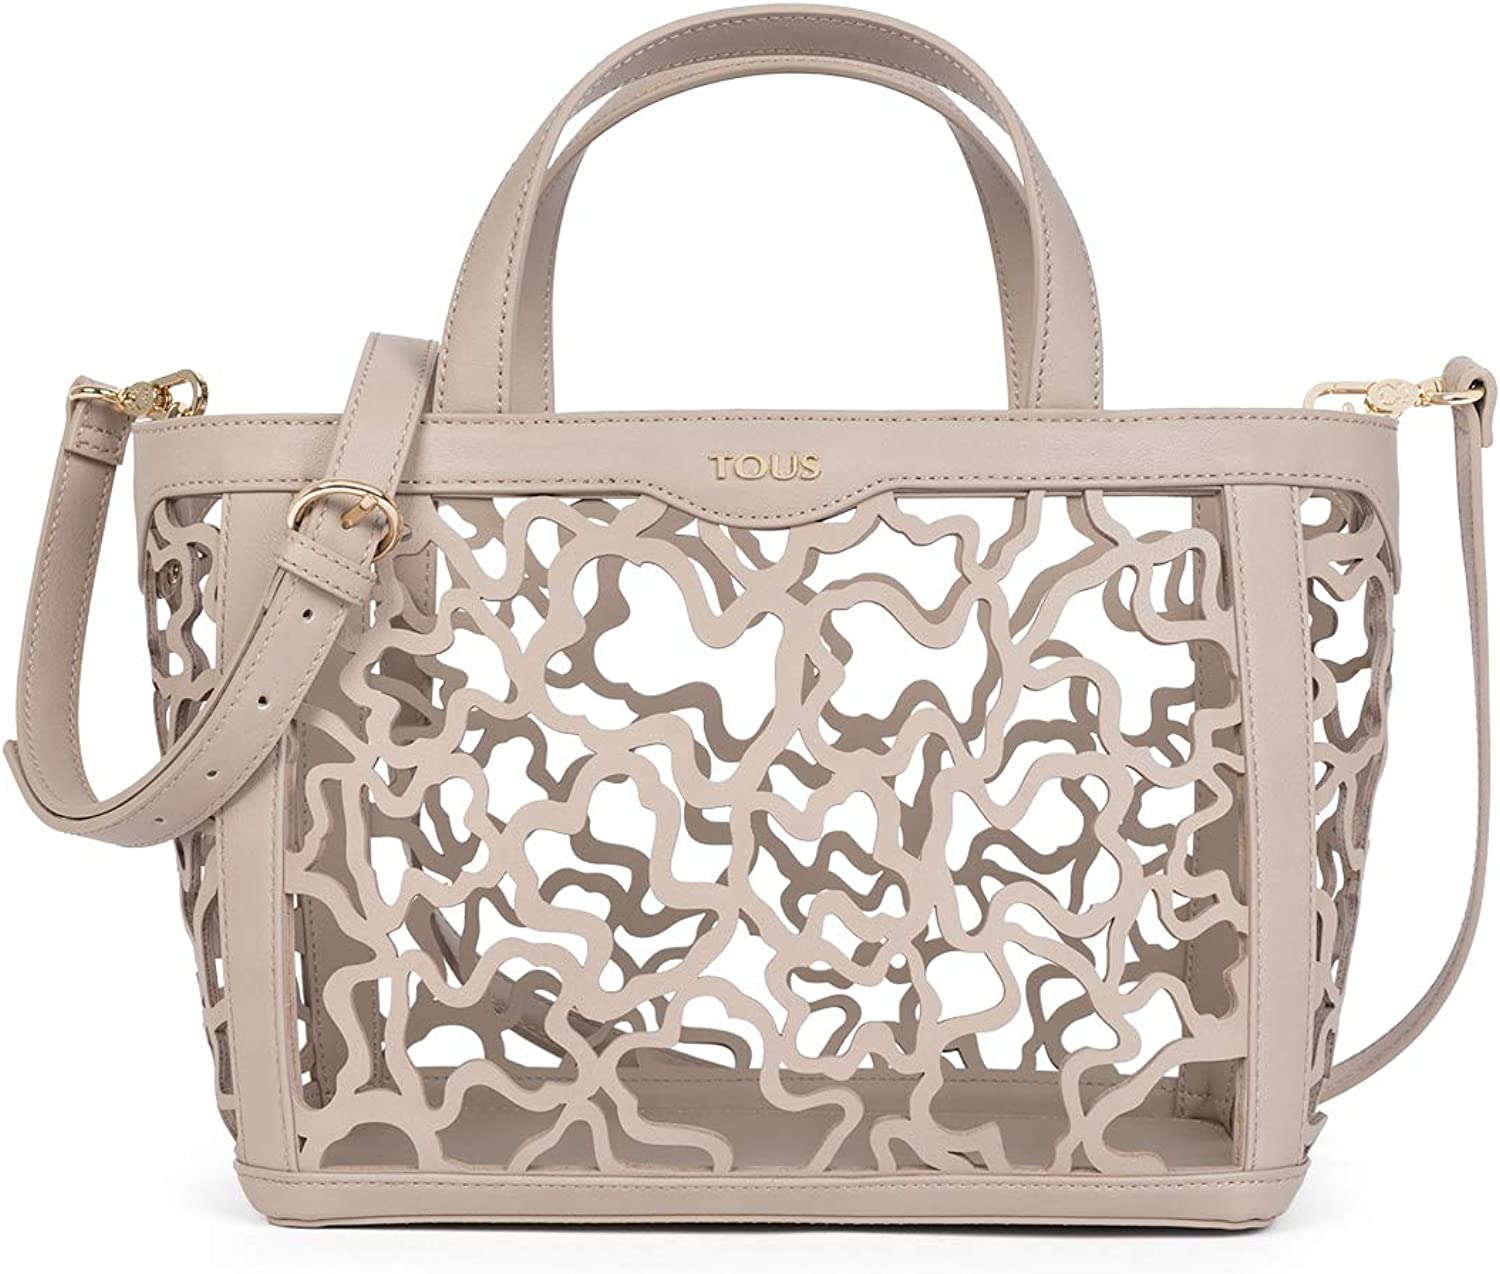 Tous Women s Shoulder Bag, 14x21x28 cm W x H x L